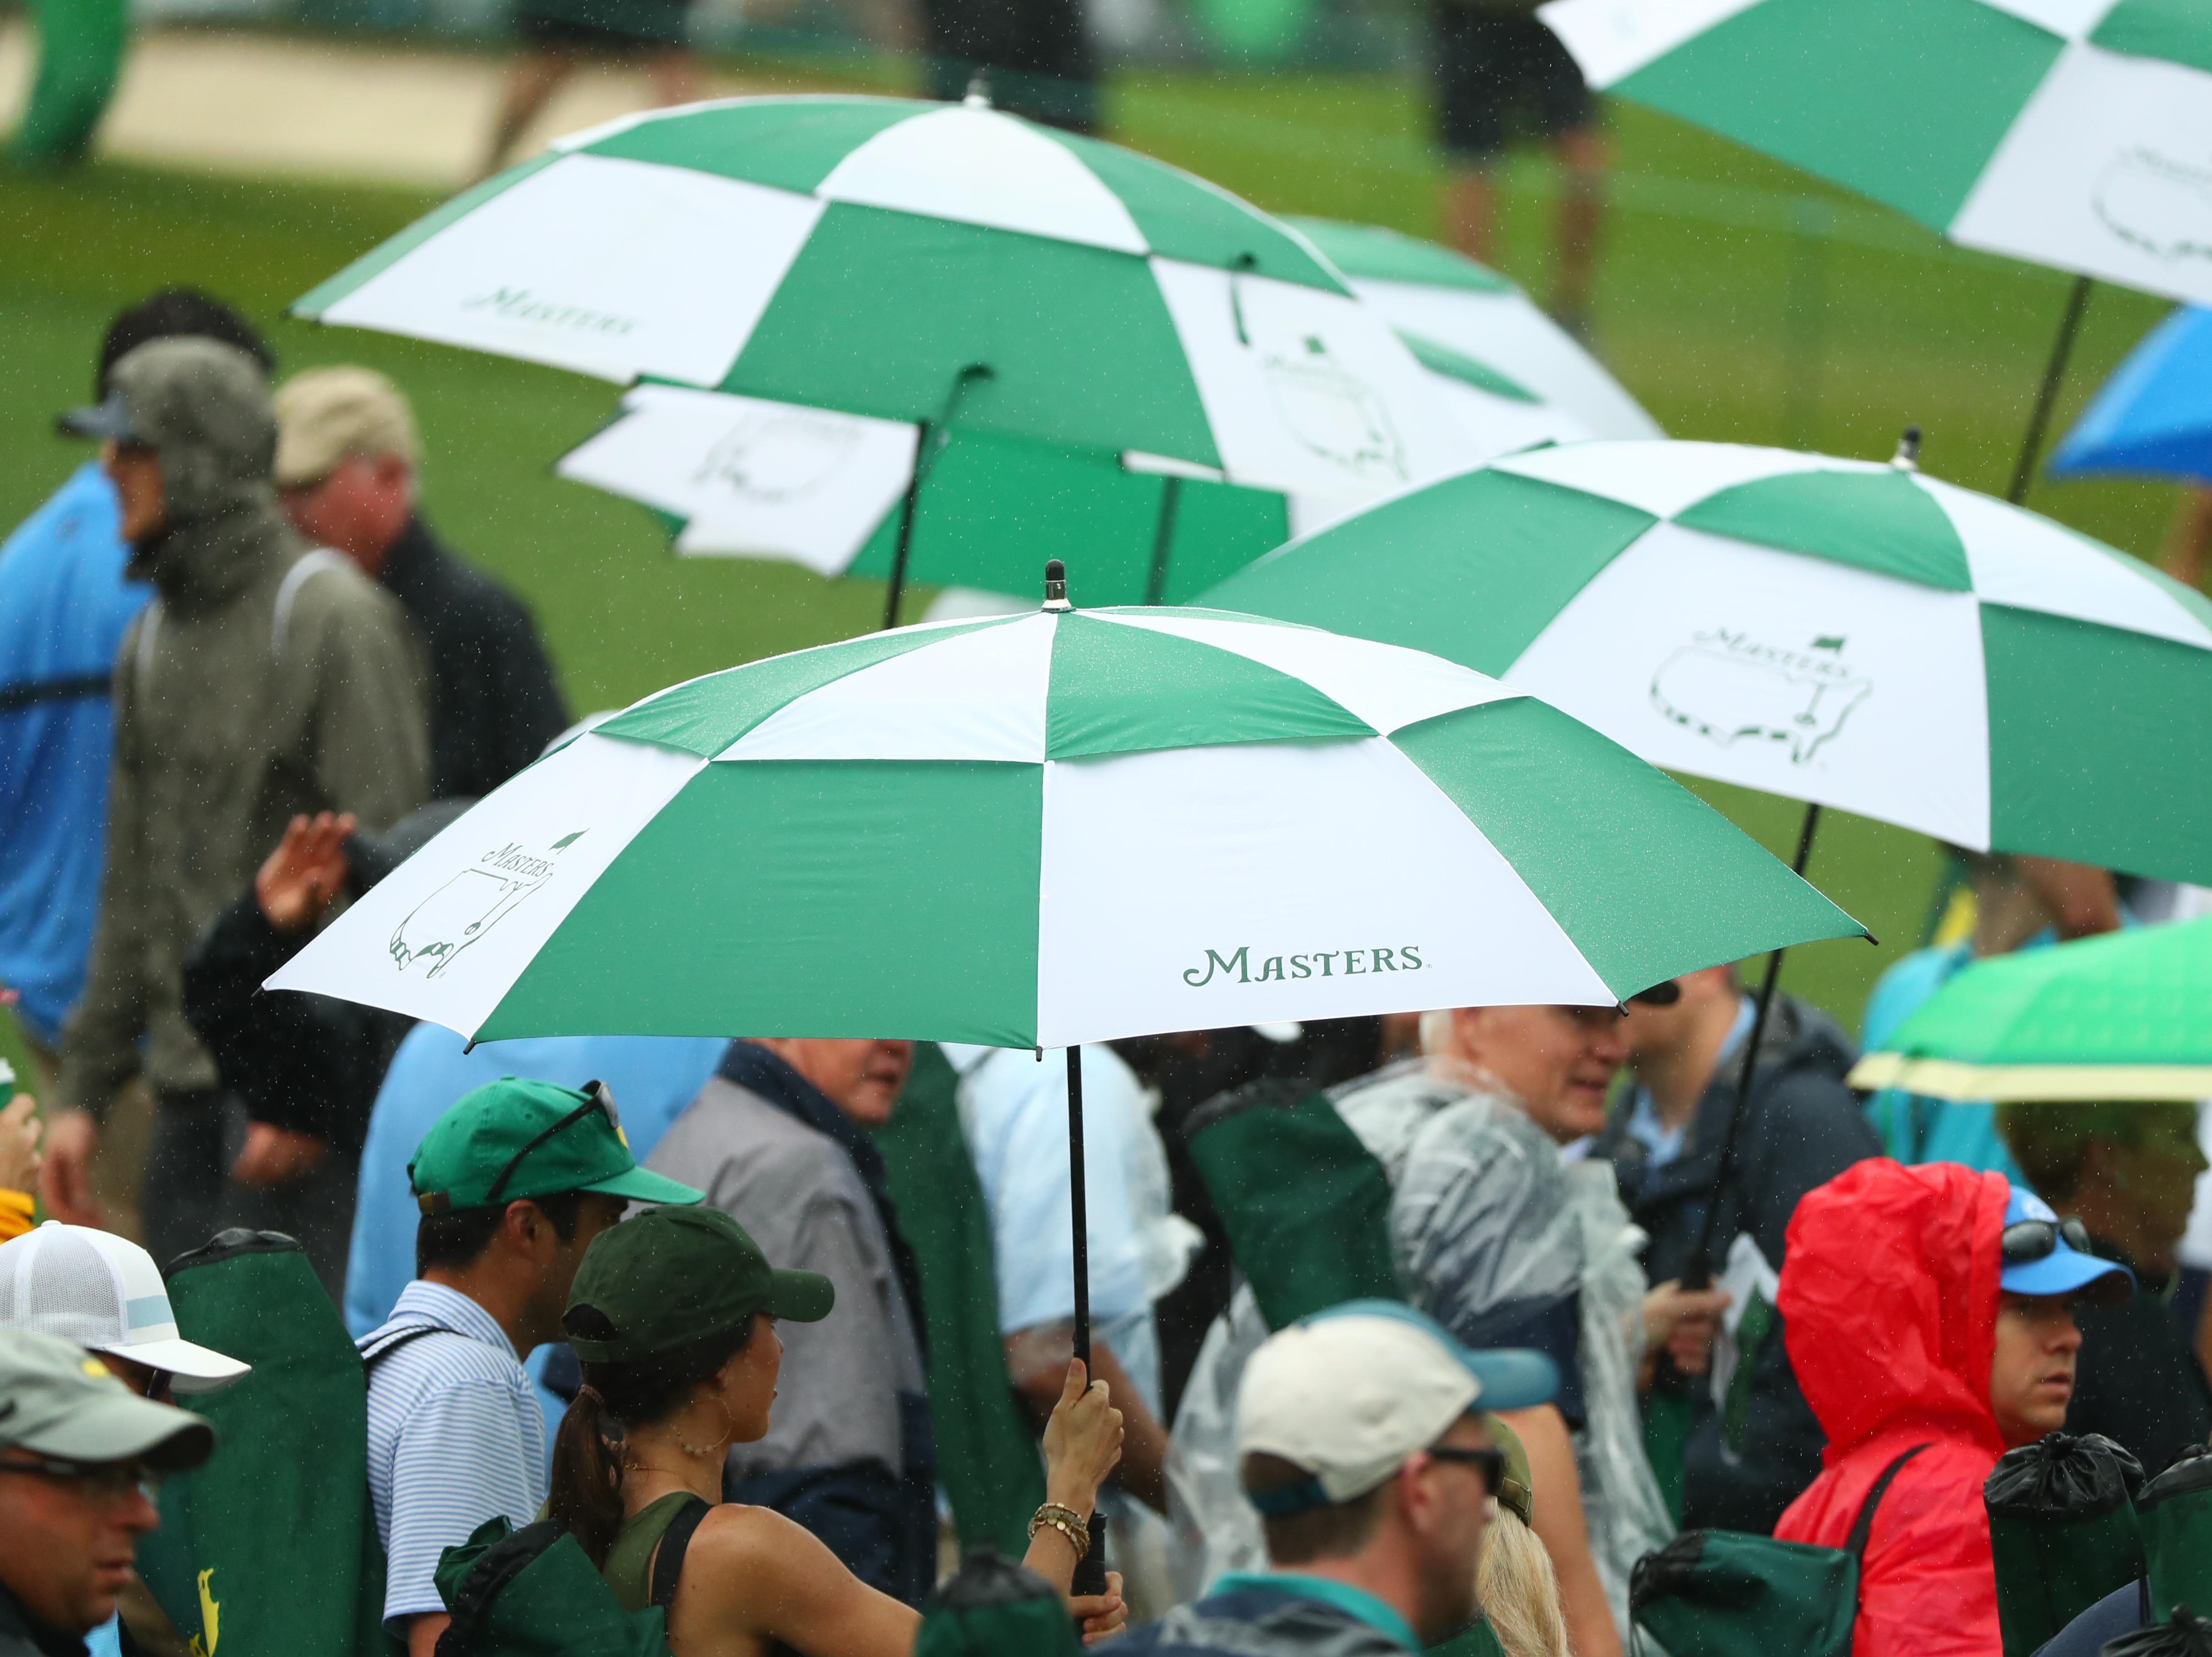 Apr 12, 2019; Augusta, GA, USA; Patrons make their way around the course under umbrellas in the rain during the second round of The Masters golf tournament at Augusta National Golf Club. Mandatory Credit: Rob Schumacher-USA TODAY Sports